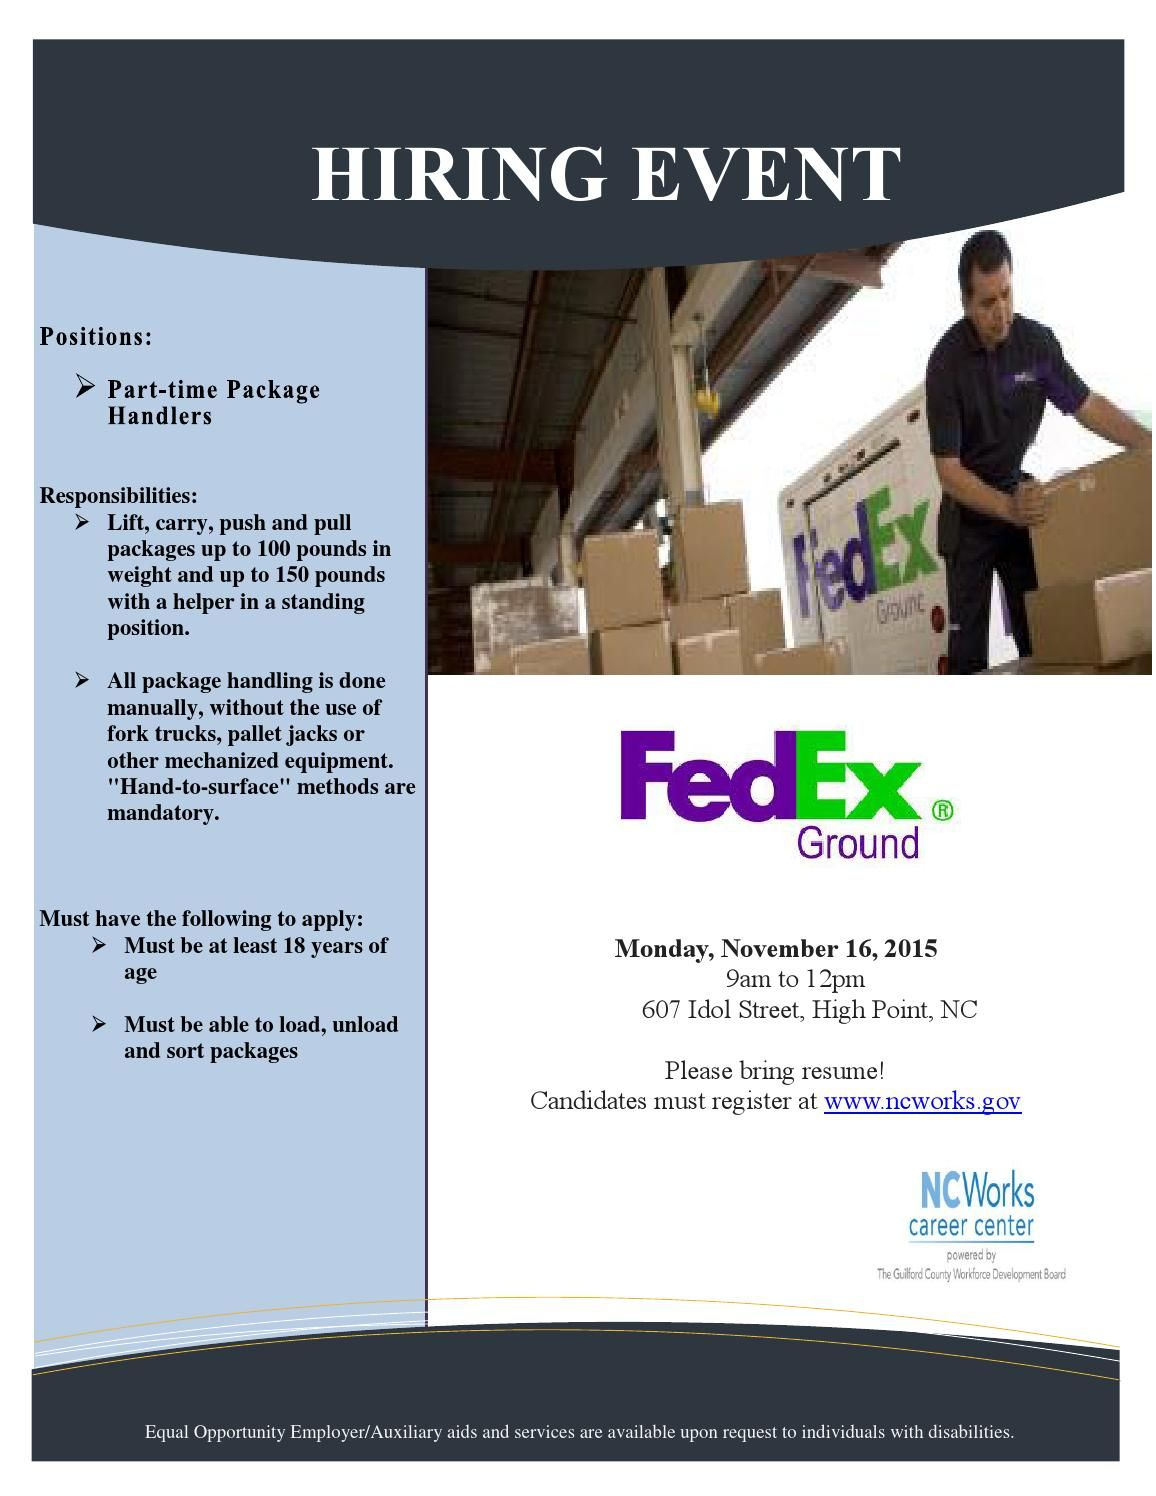 FedEx Hiring Event  Positions:   Part-time Package Handlers  Must be able to load/unload packages